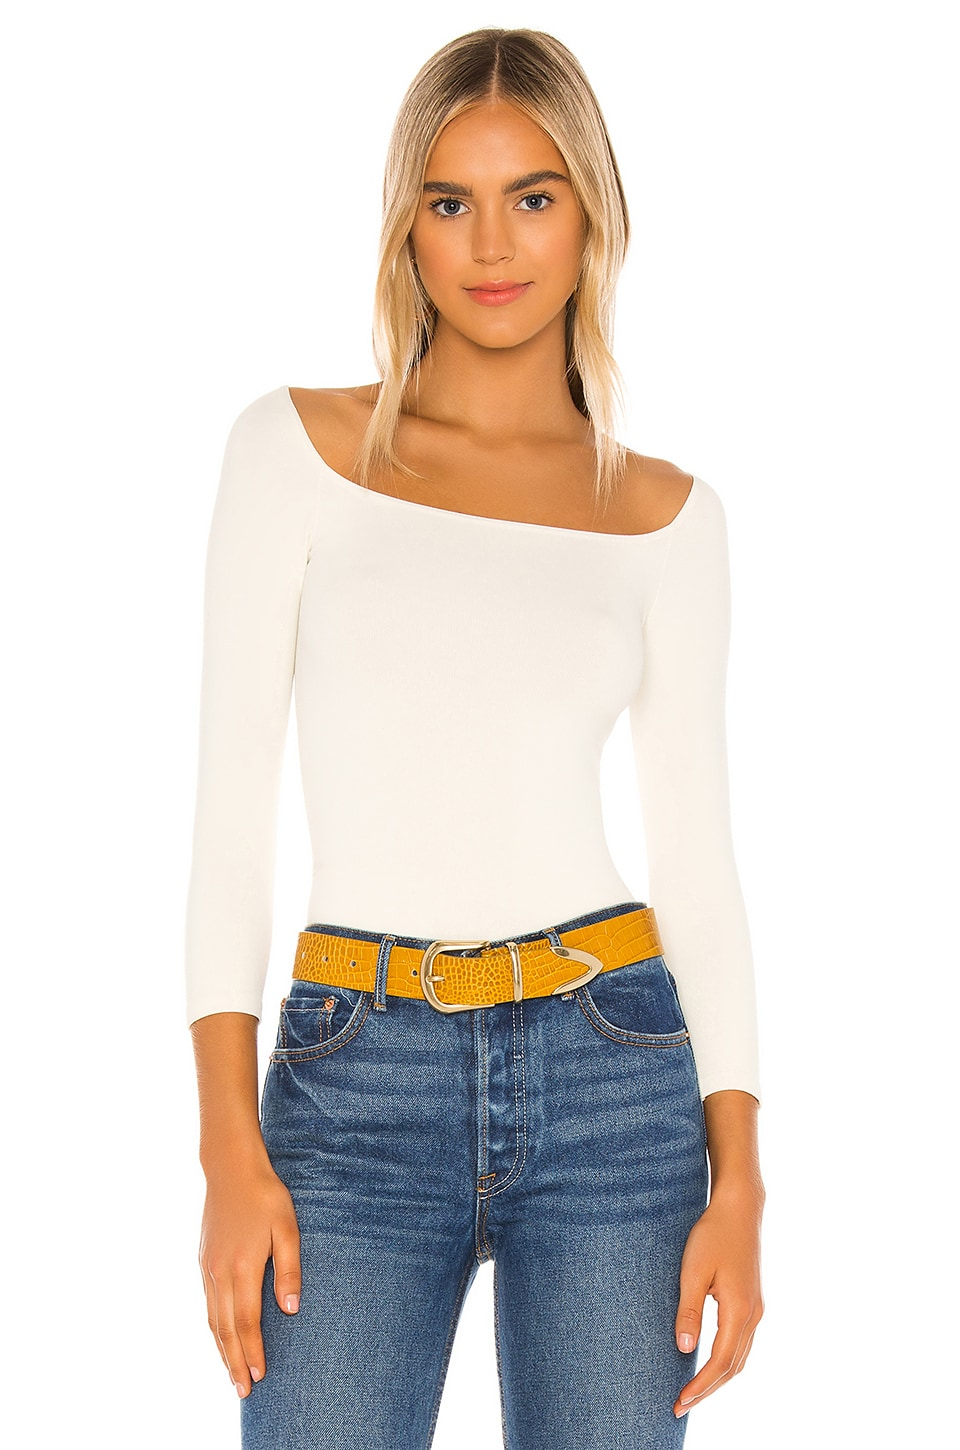 Square Neck Tee                     Free People 8